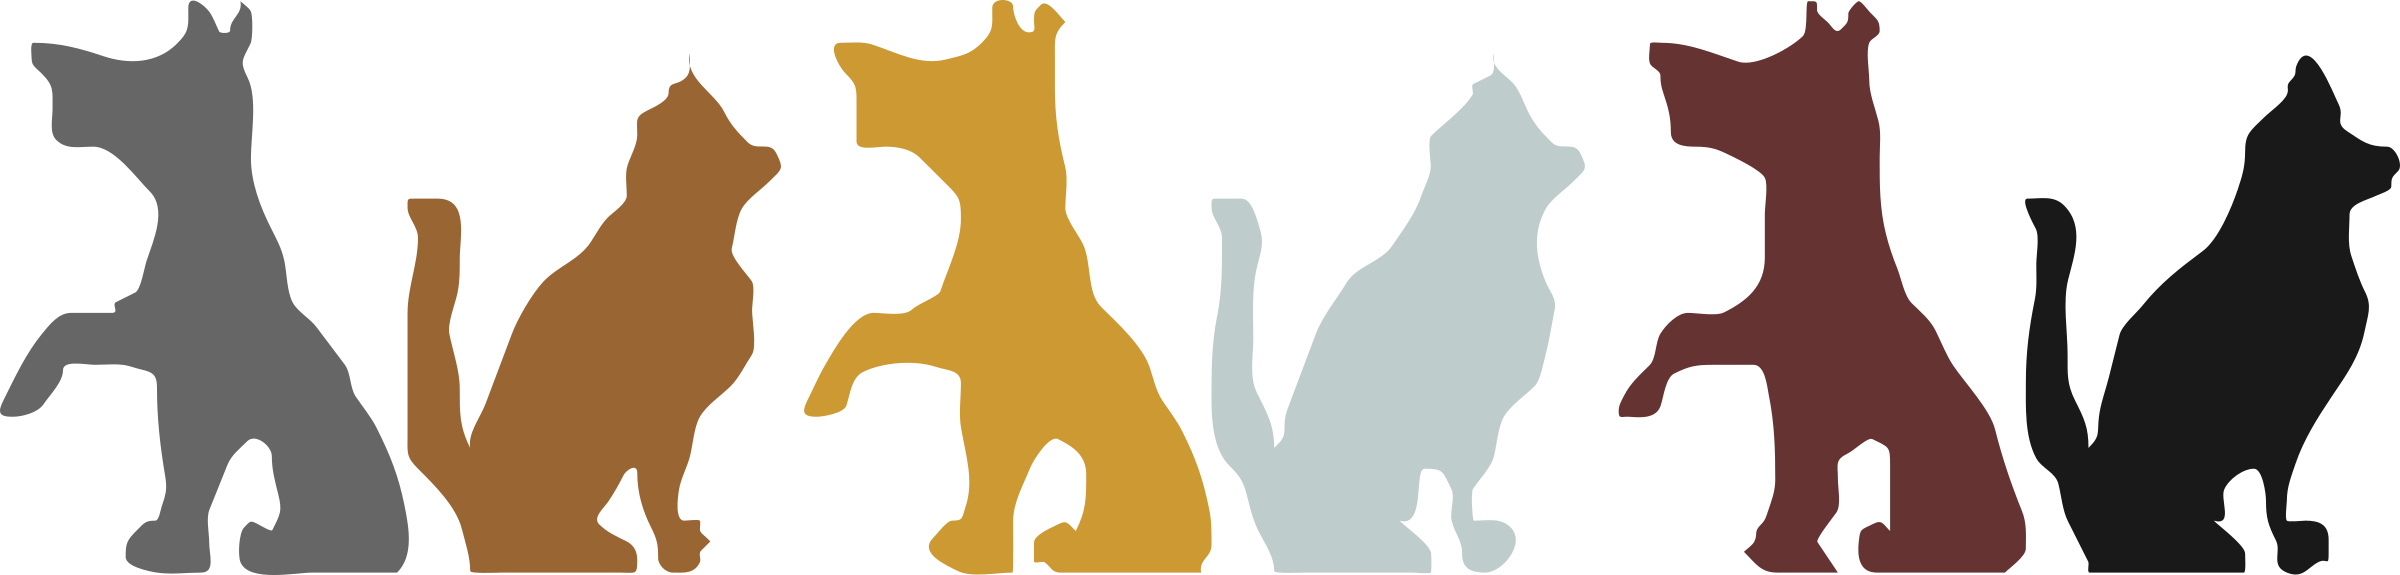 Pet clipart frame. Cat and dog free